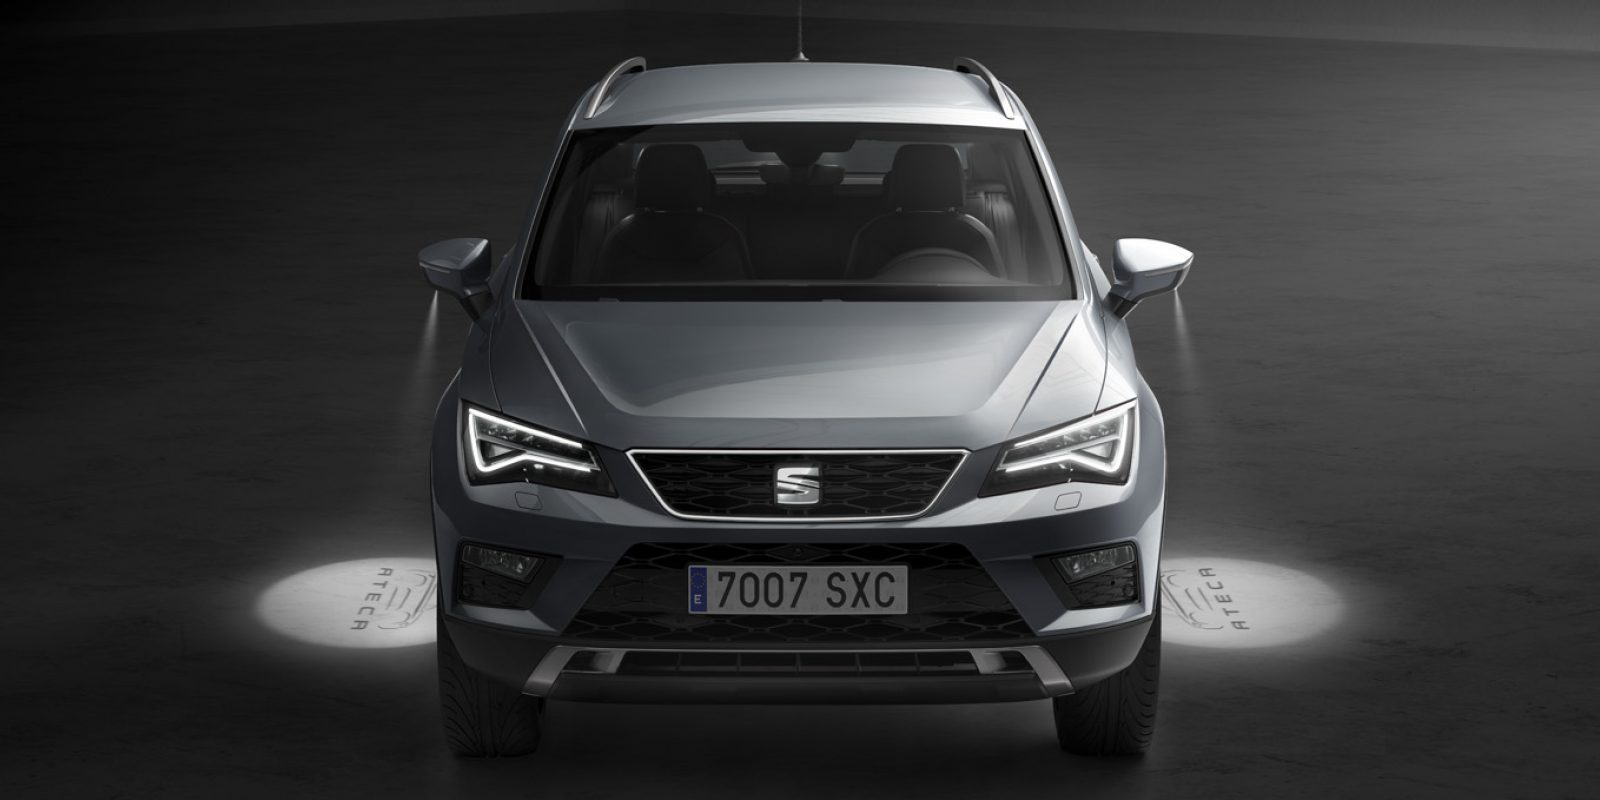 seat ateca el primer suv de la marca que lleg para quedarse publimetro m xico. Black Bedroom Furniture Sets. Home Design Ideas